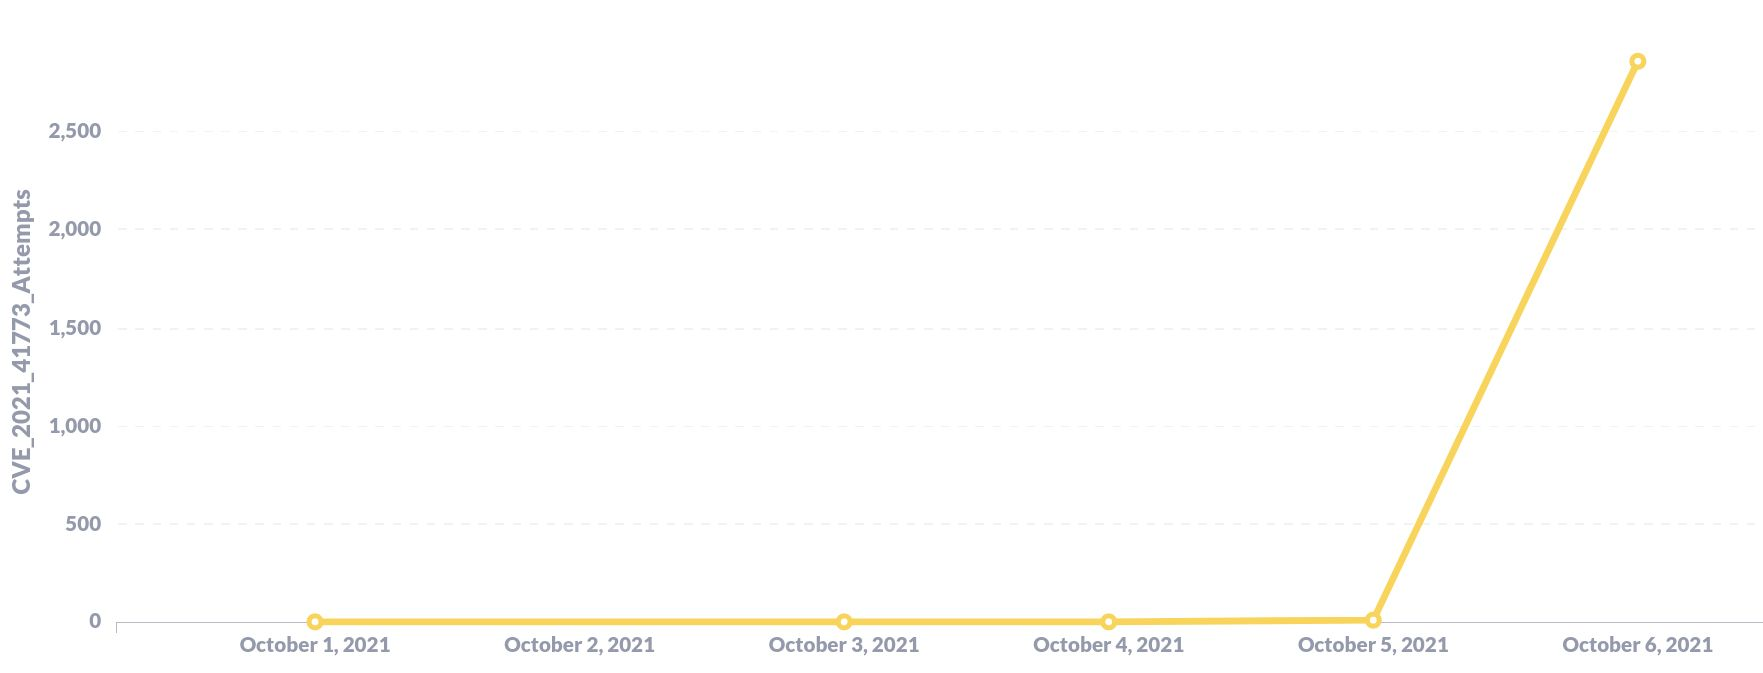 Figure 1: Count of CVE-2021-41773 Attempts by Day